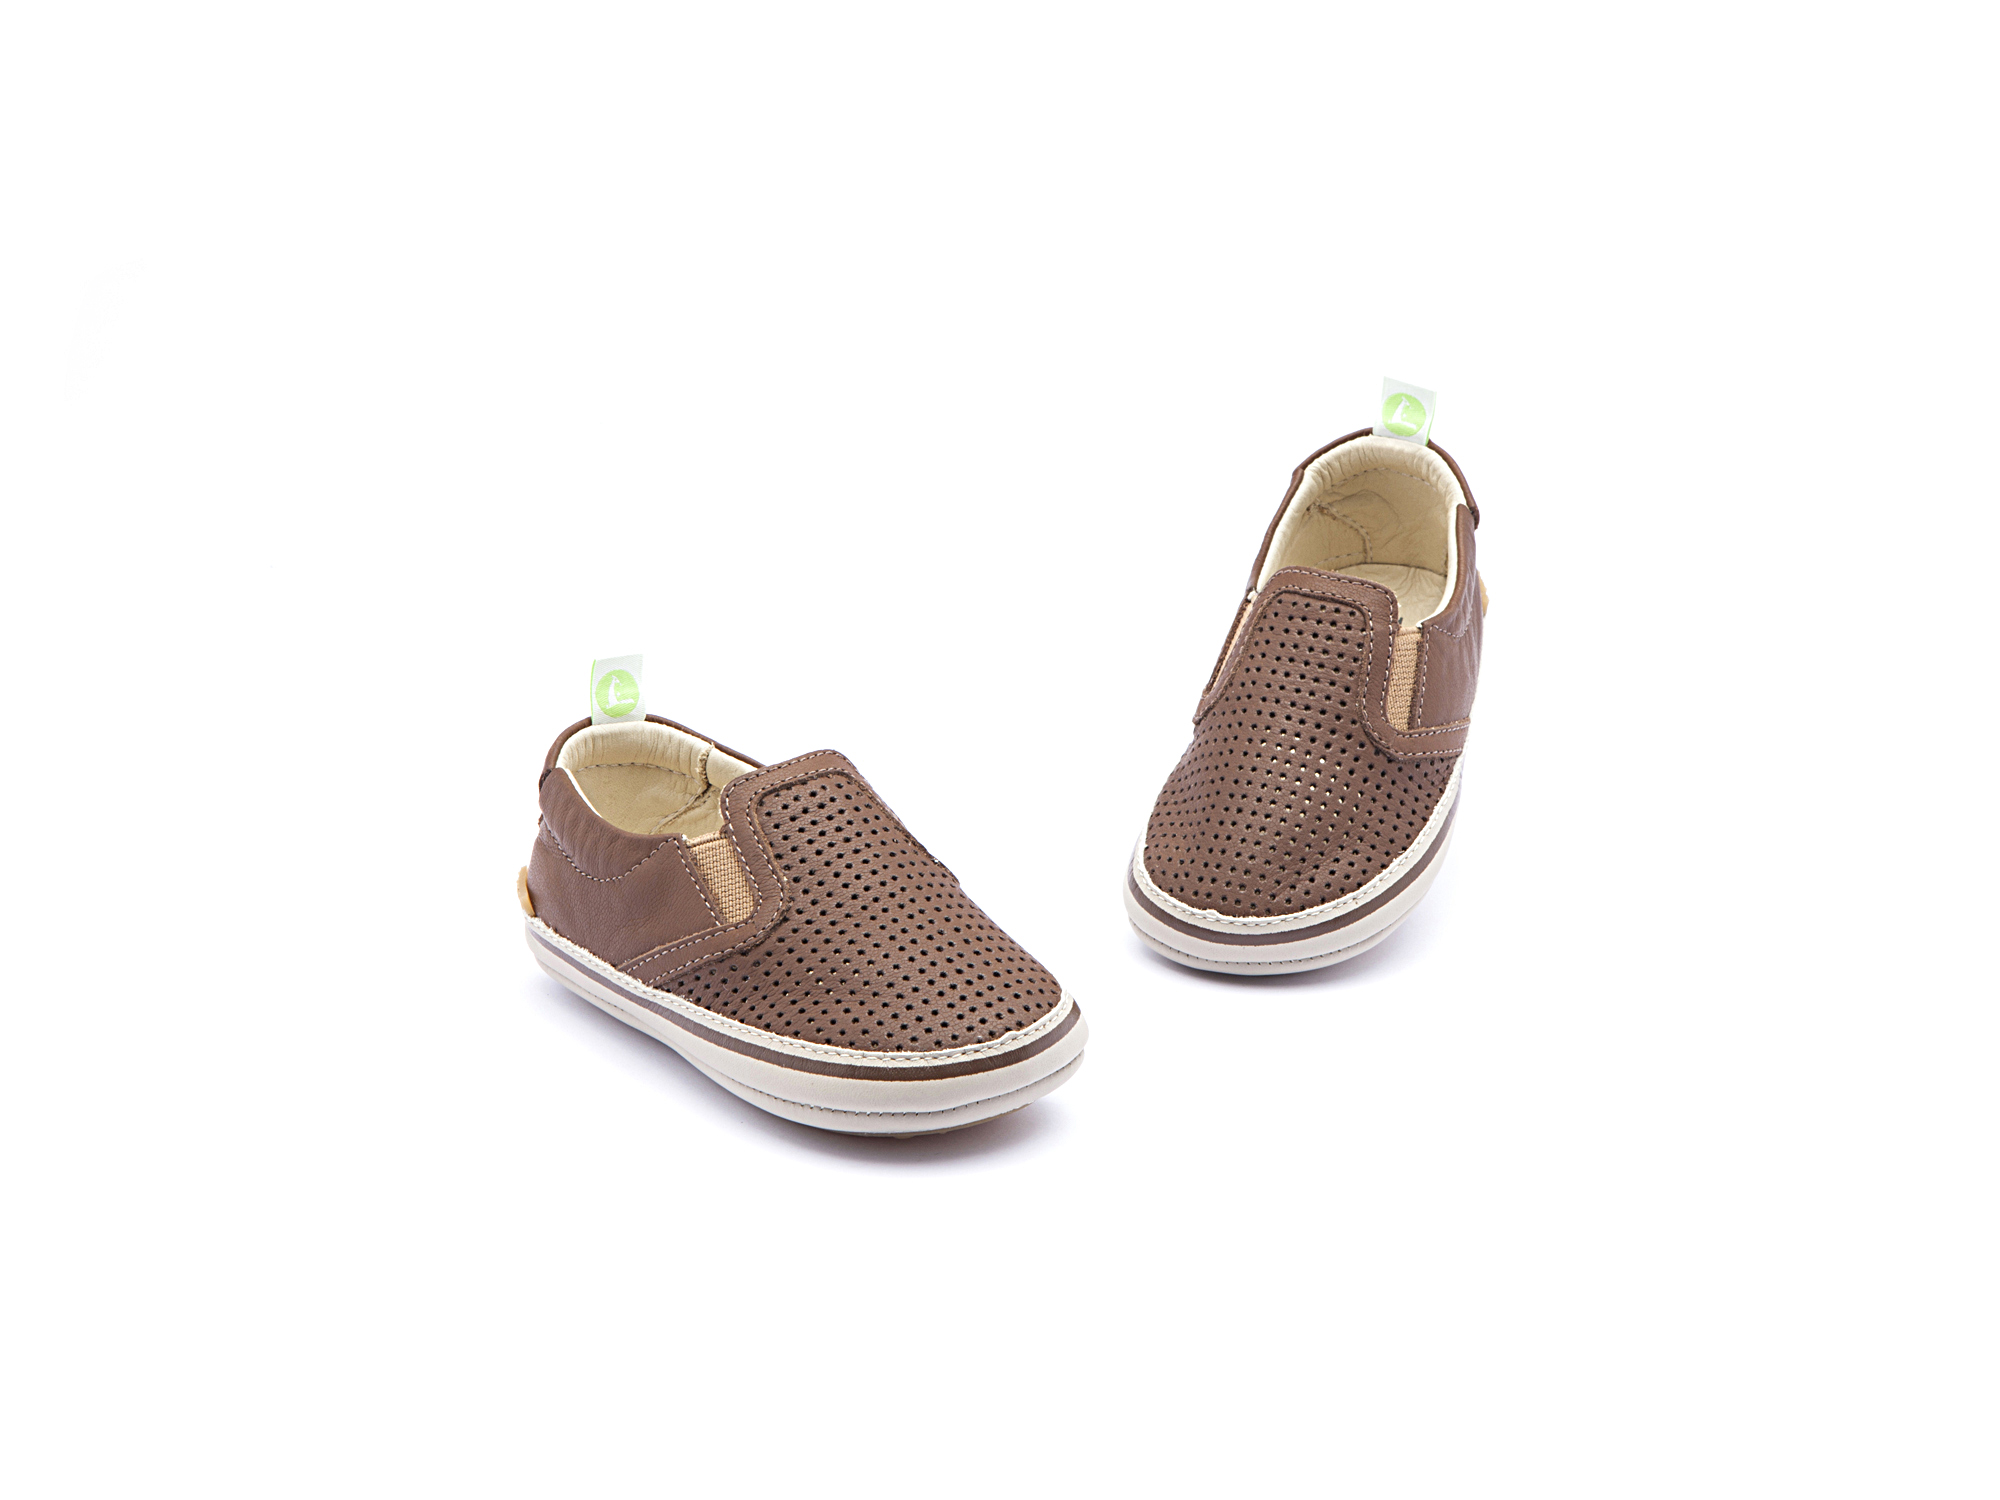 Sneaker Casual Woody Old Brown Holes/ Old Brown Baby 0 à 2 anos - 1